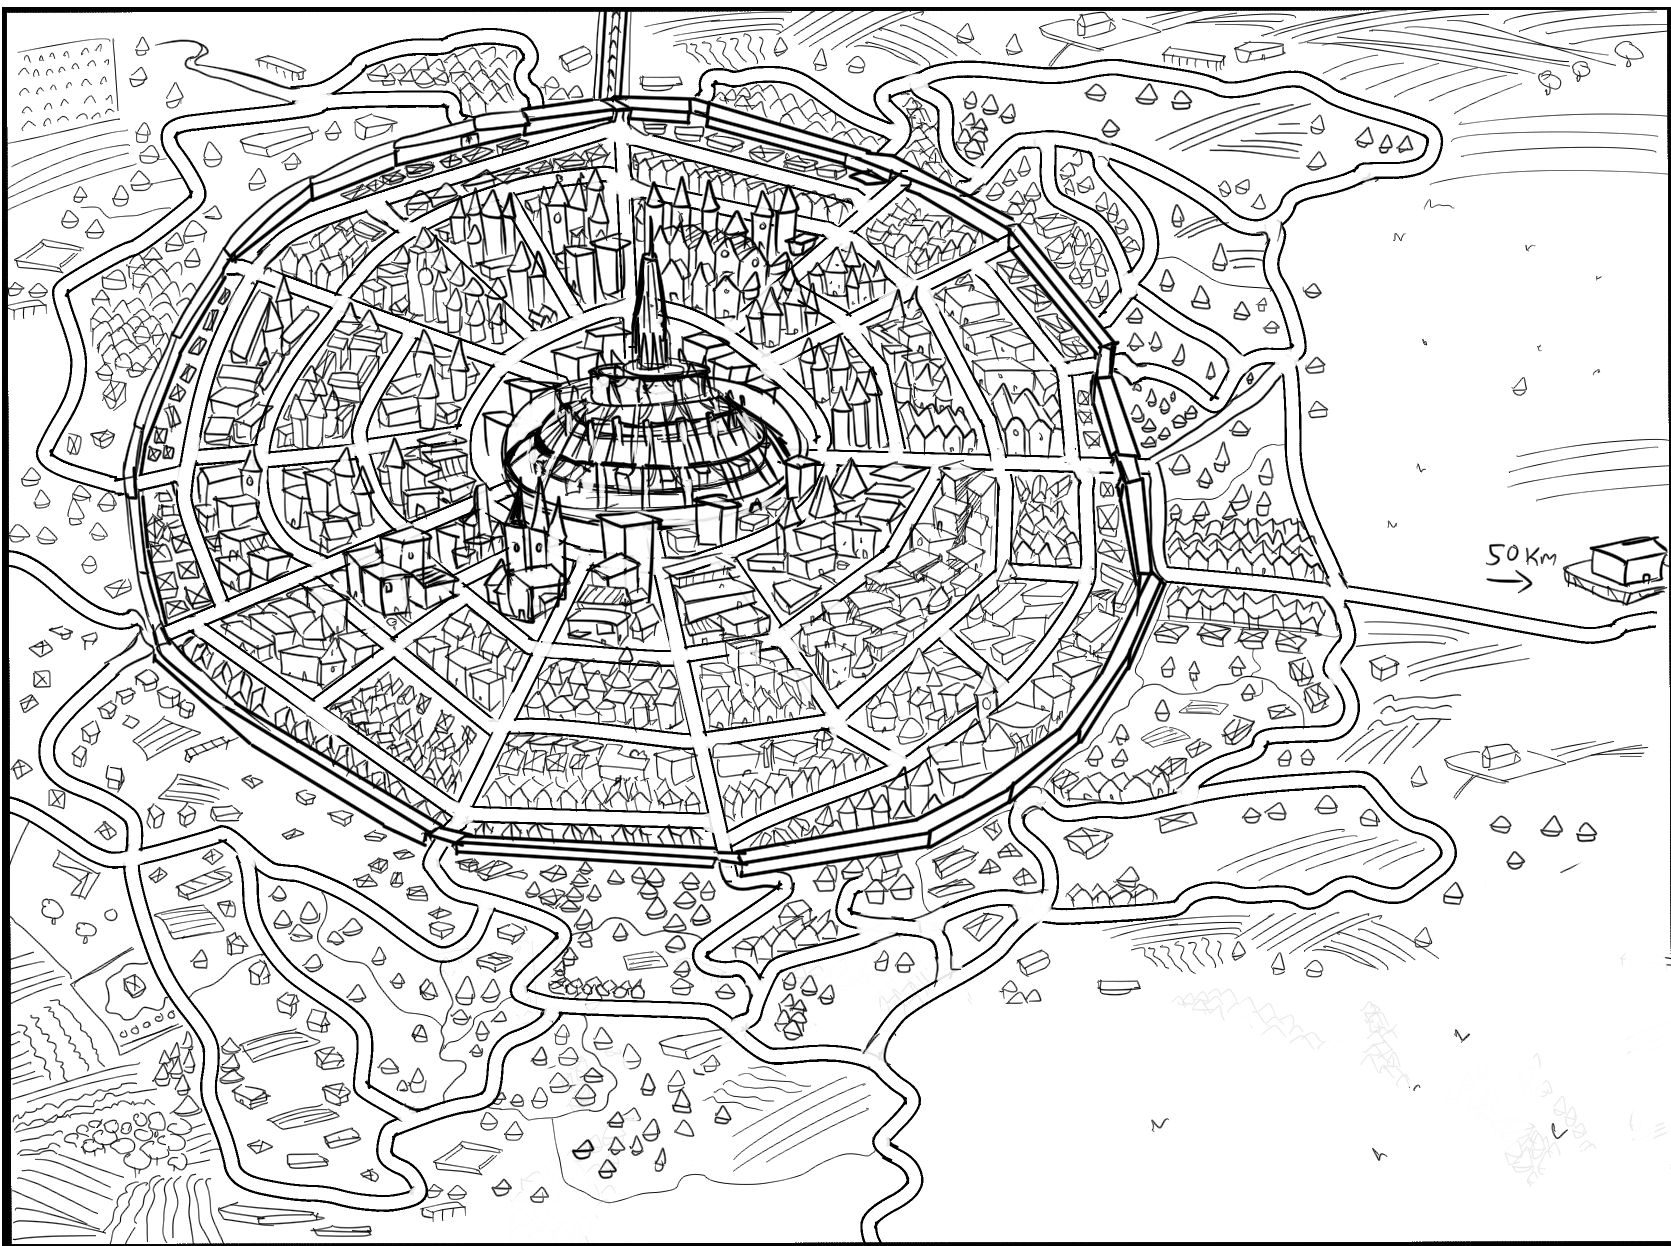 Black and white city map illustration with roads and little houses for printing in self publish novel cartography fantasy city